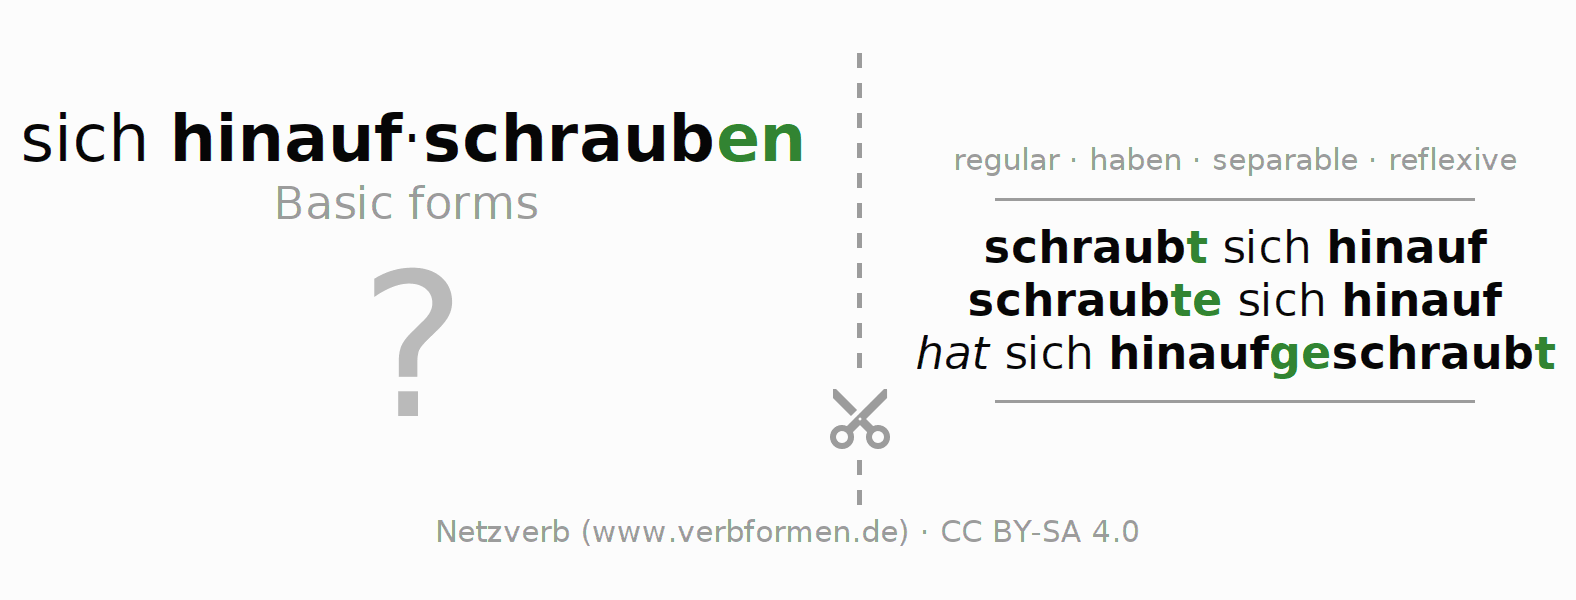 Flash cards for the conjugation of the verb sich hinaufschrauben